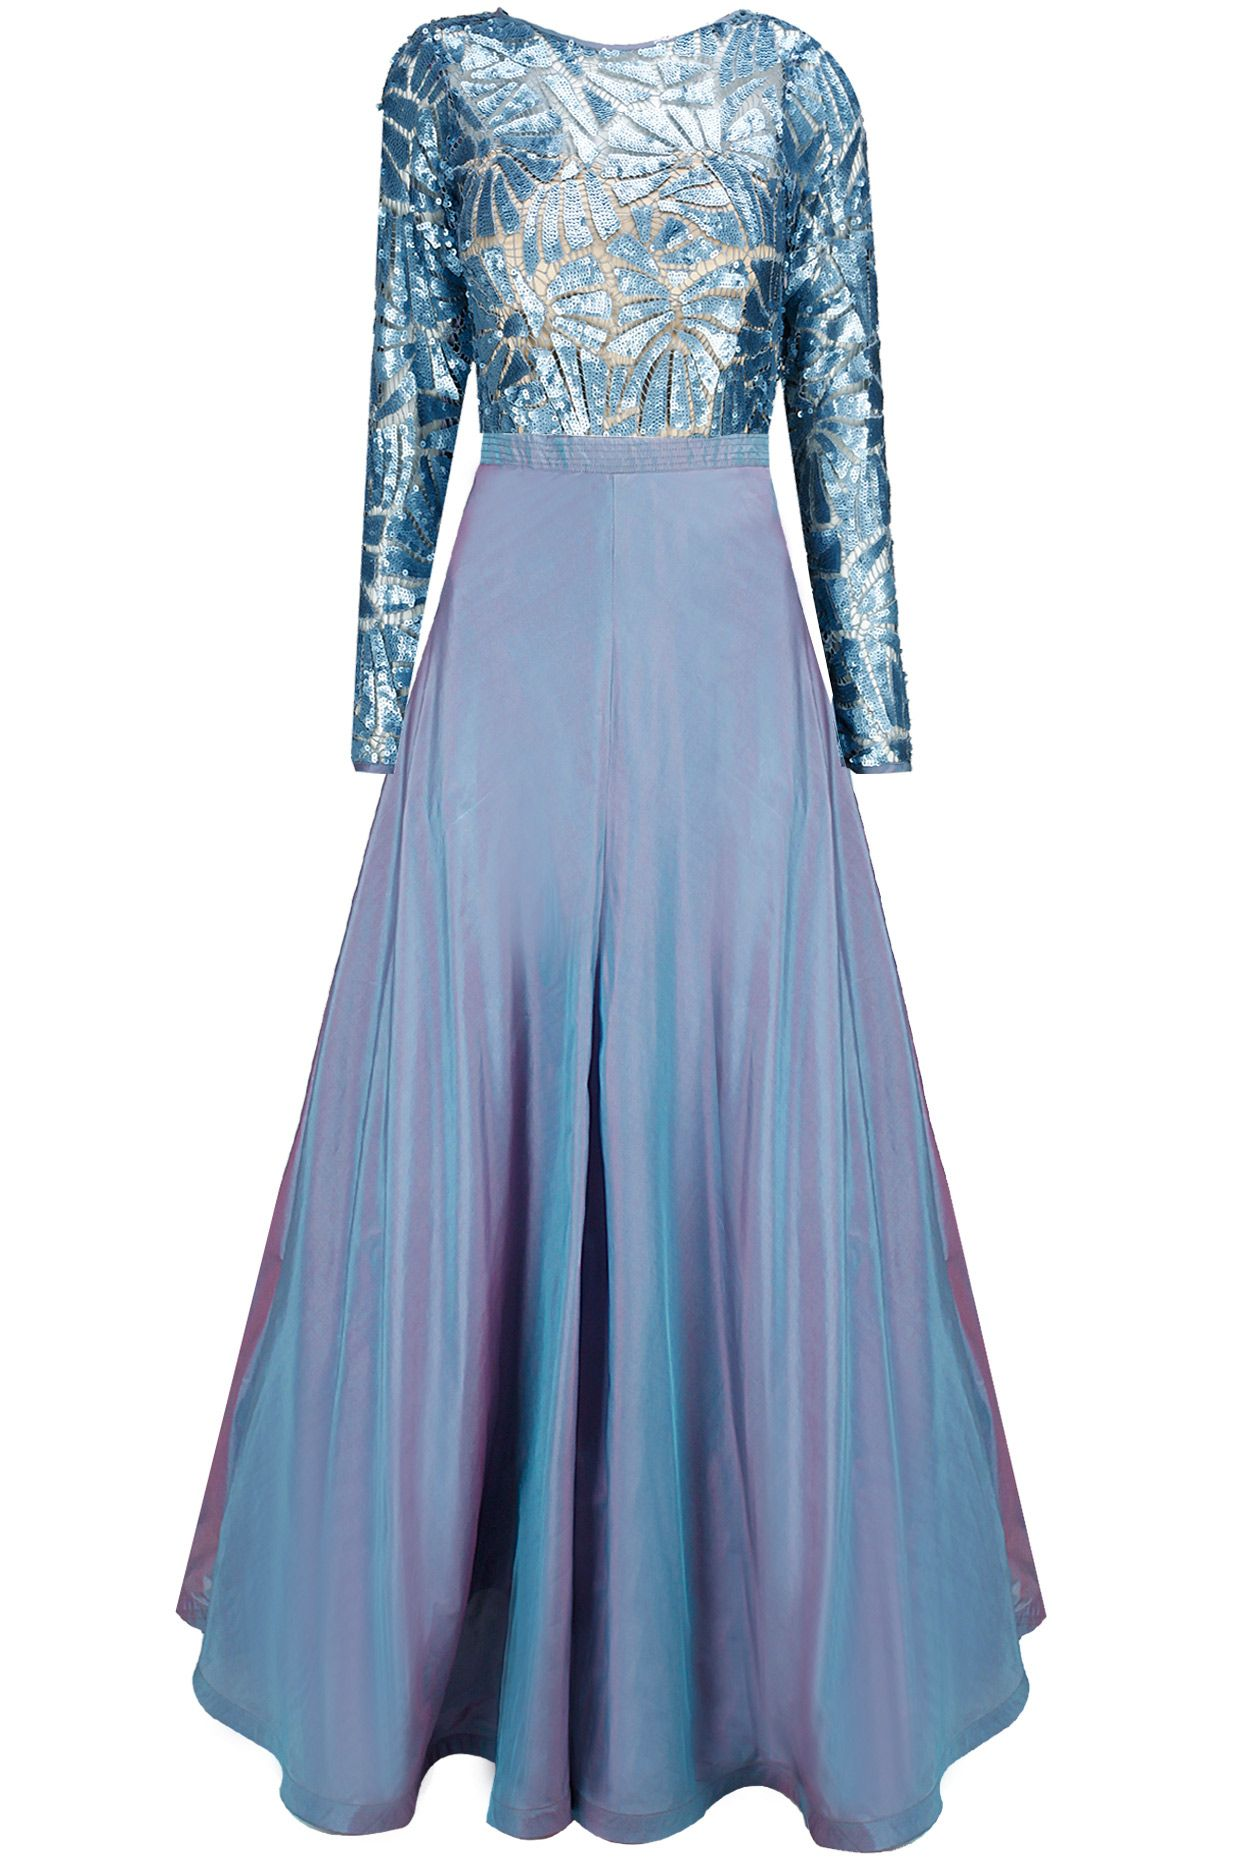 Caroline blue sequins embellished gown available only at perniaus